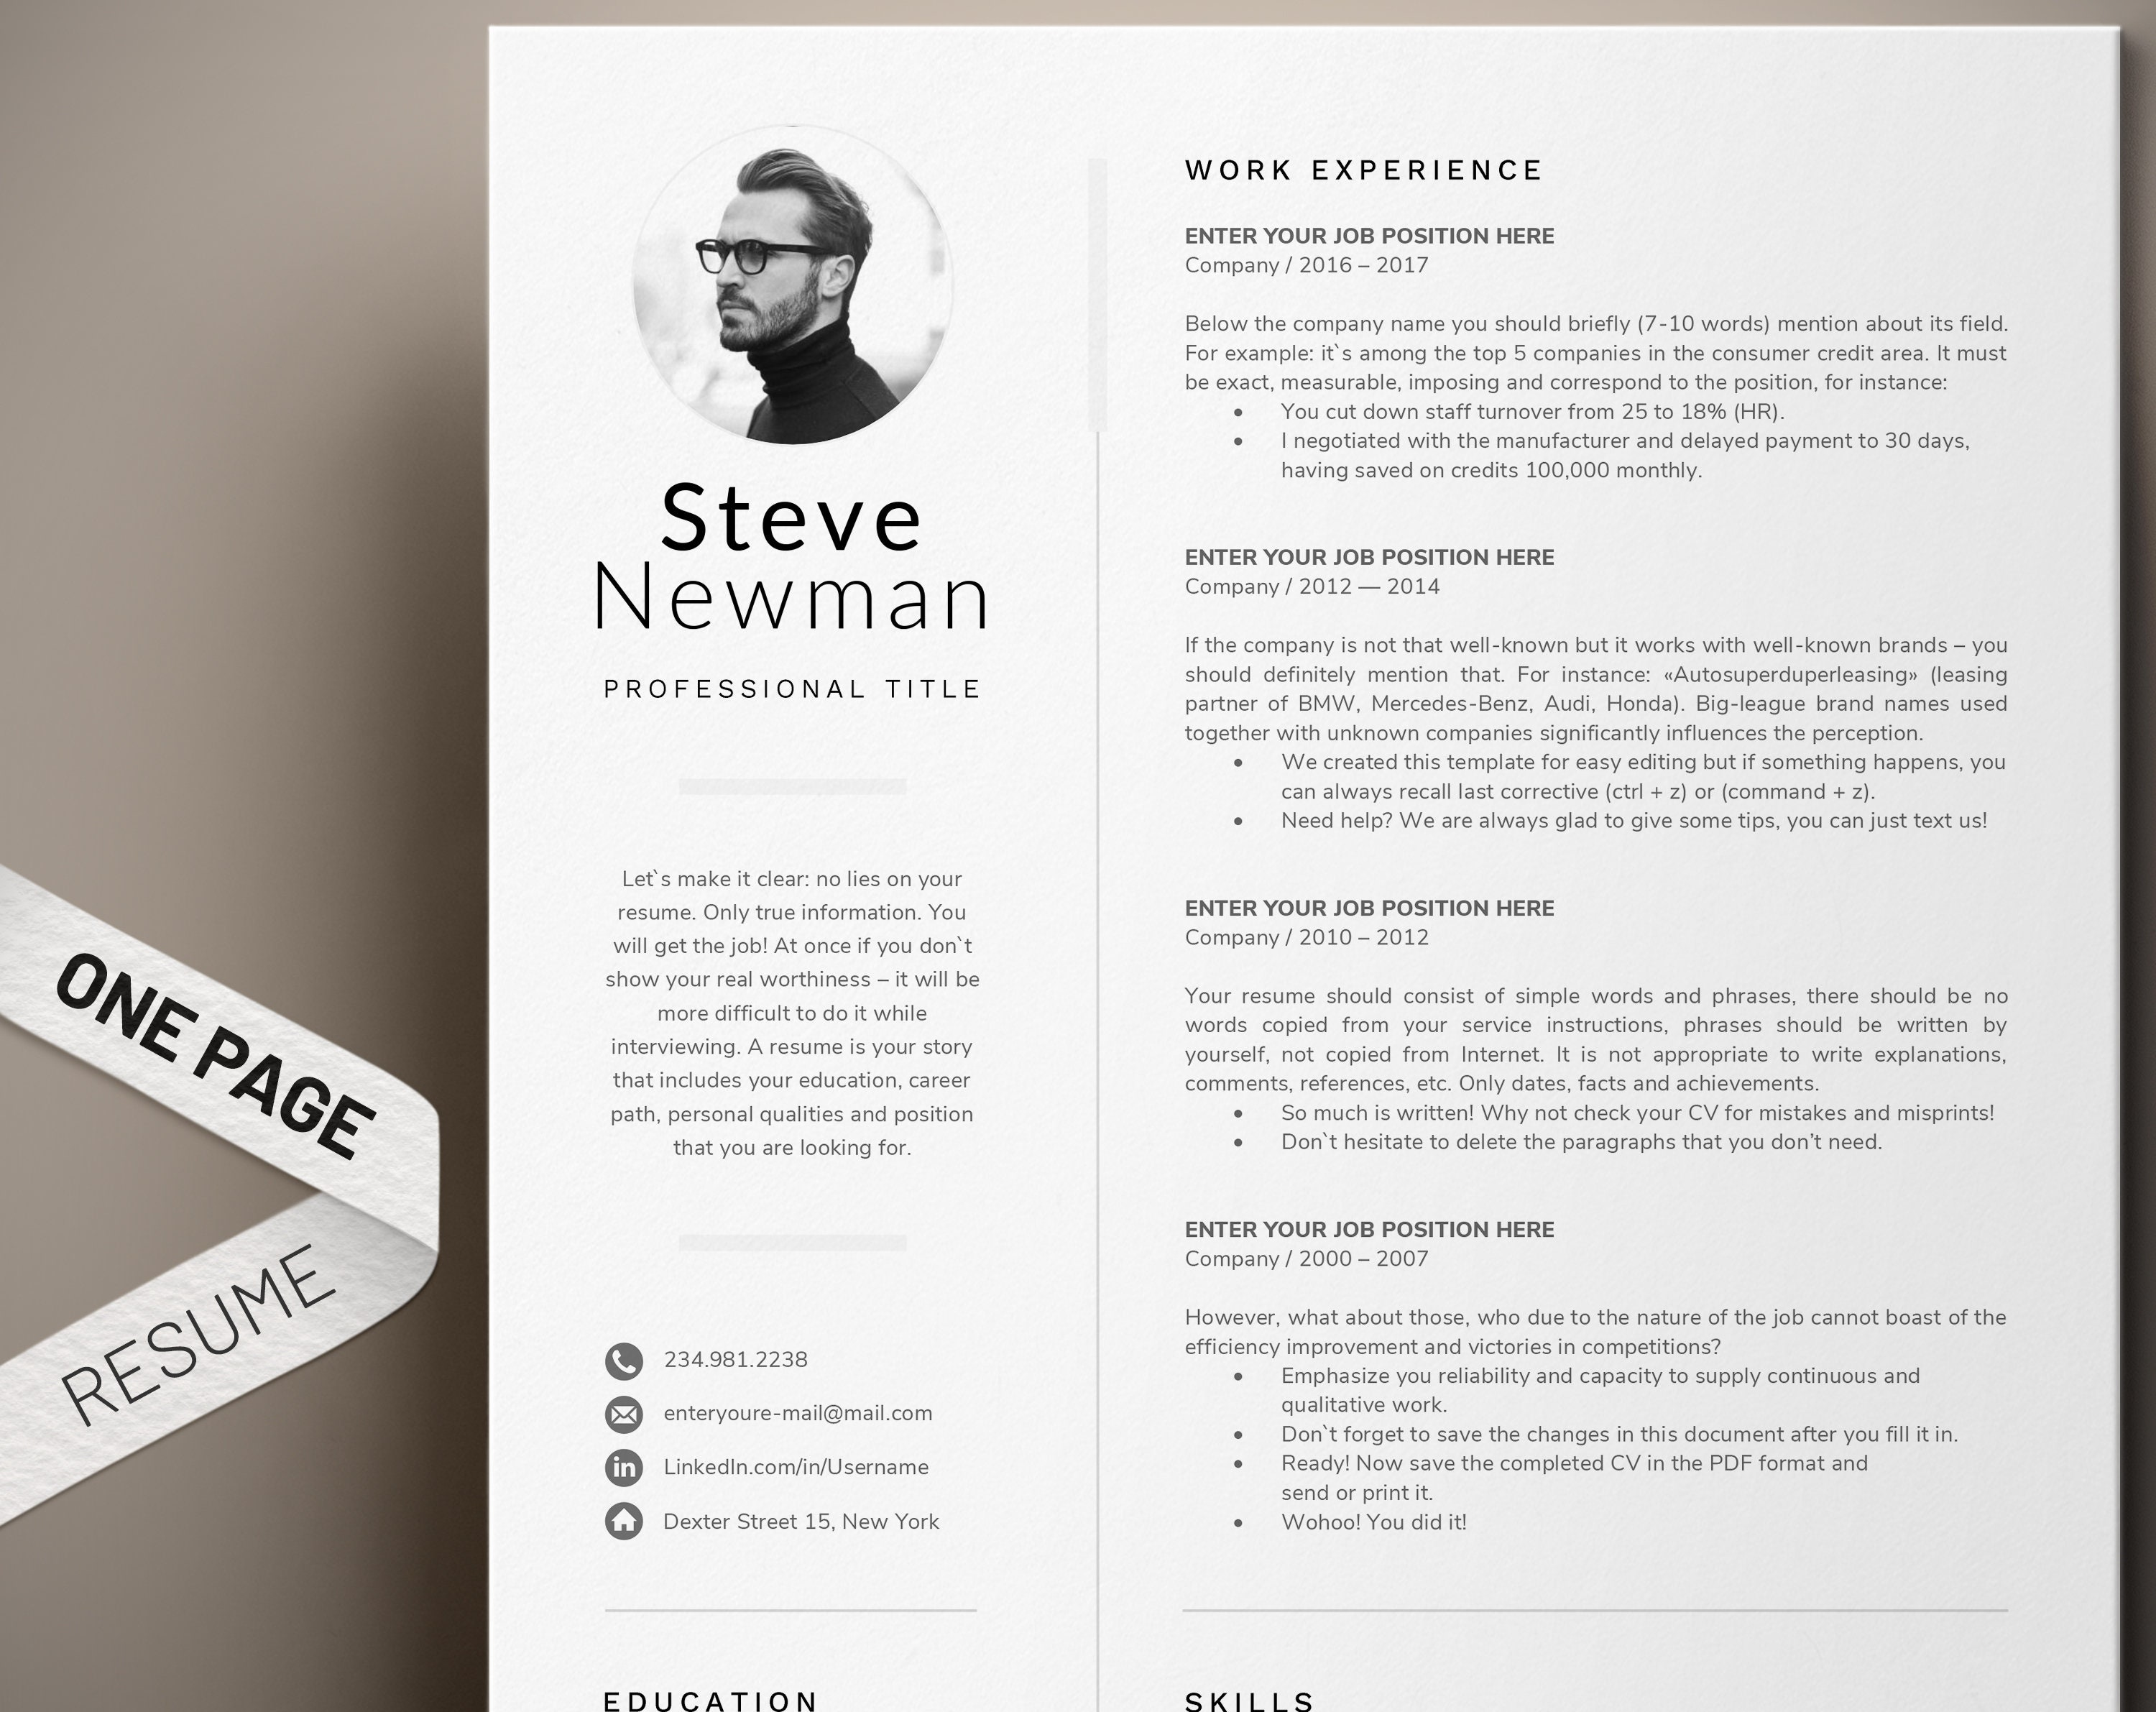 Minimalist Resume Template Word Professional Resume Cv | Etsy